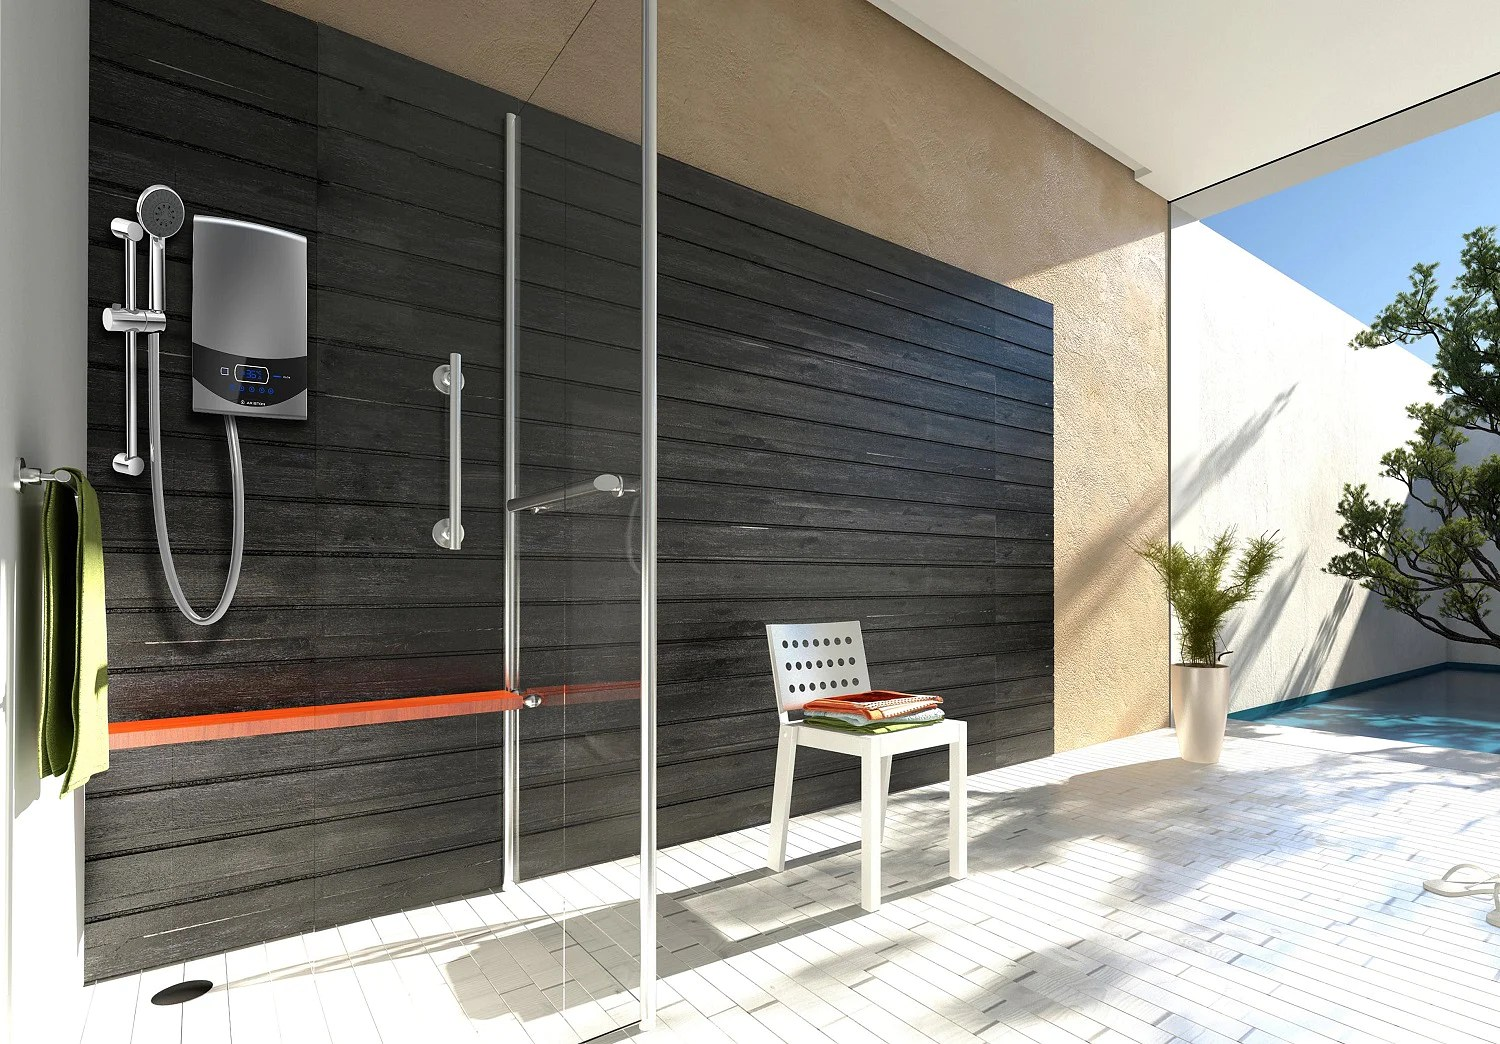 hight resolution of ariston s aures luxury electric instant water heater priced at 299 is designed by italian designer umberto palermo and is developed with the brand s